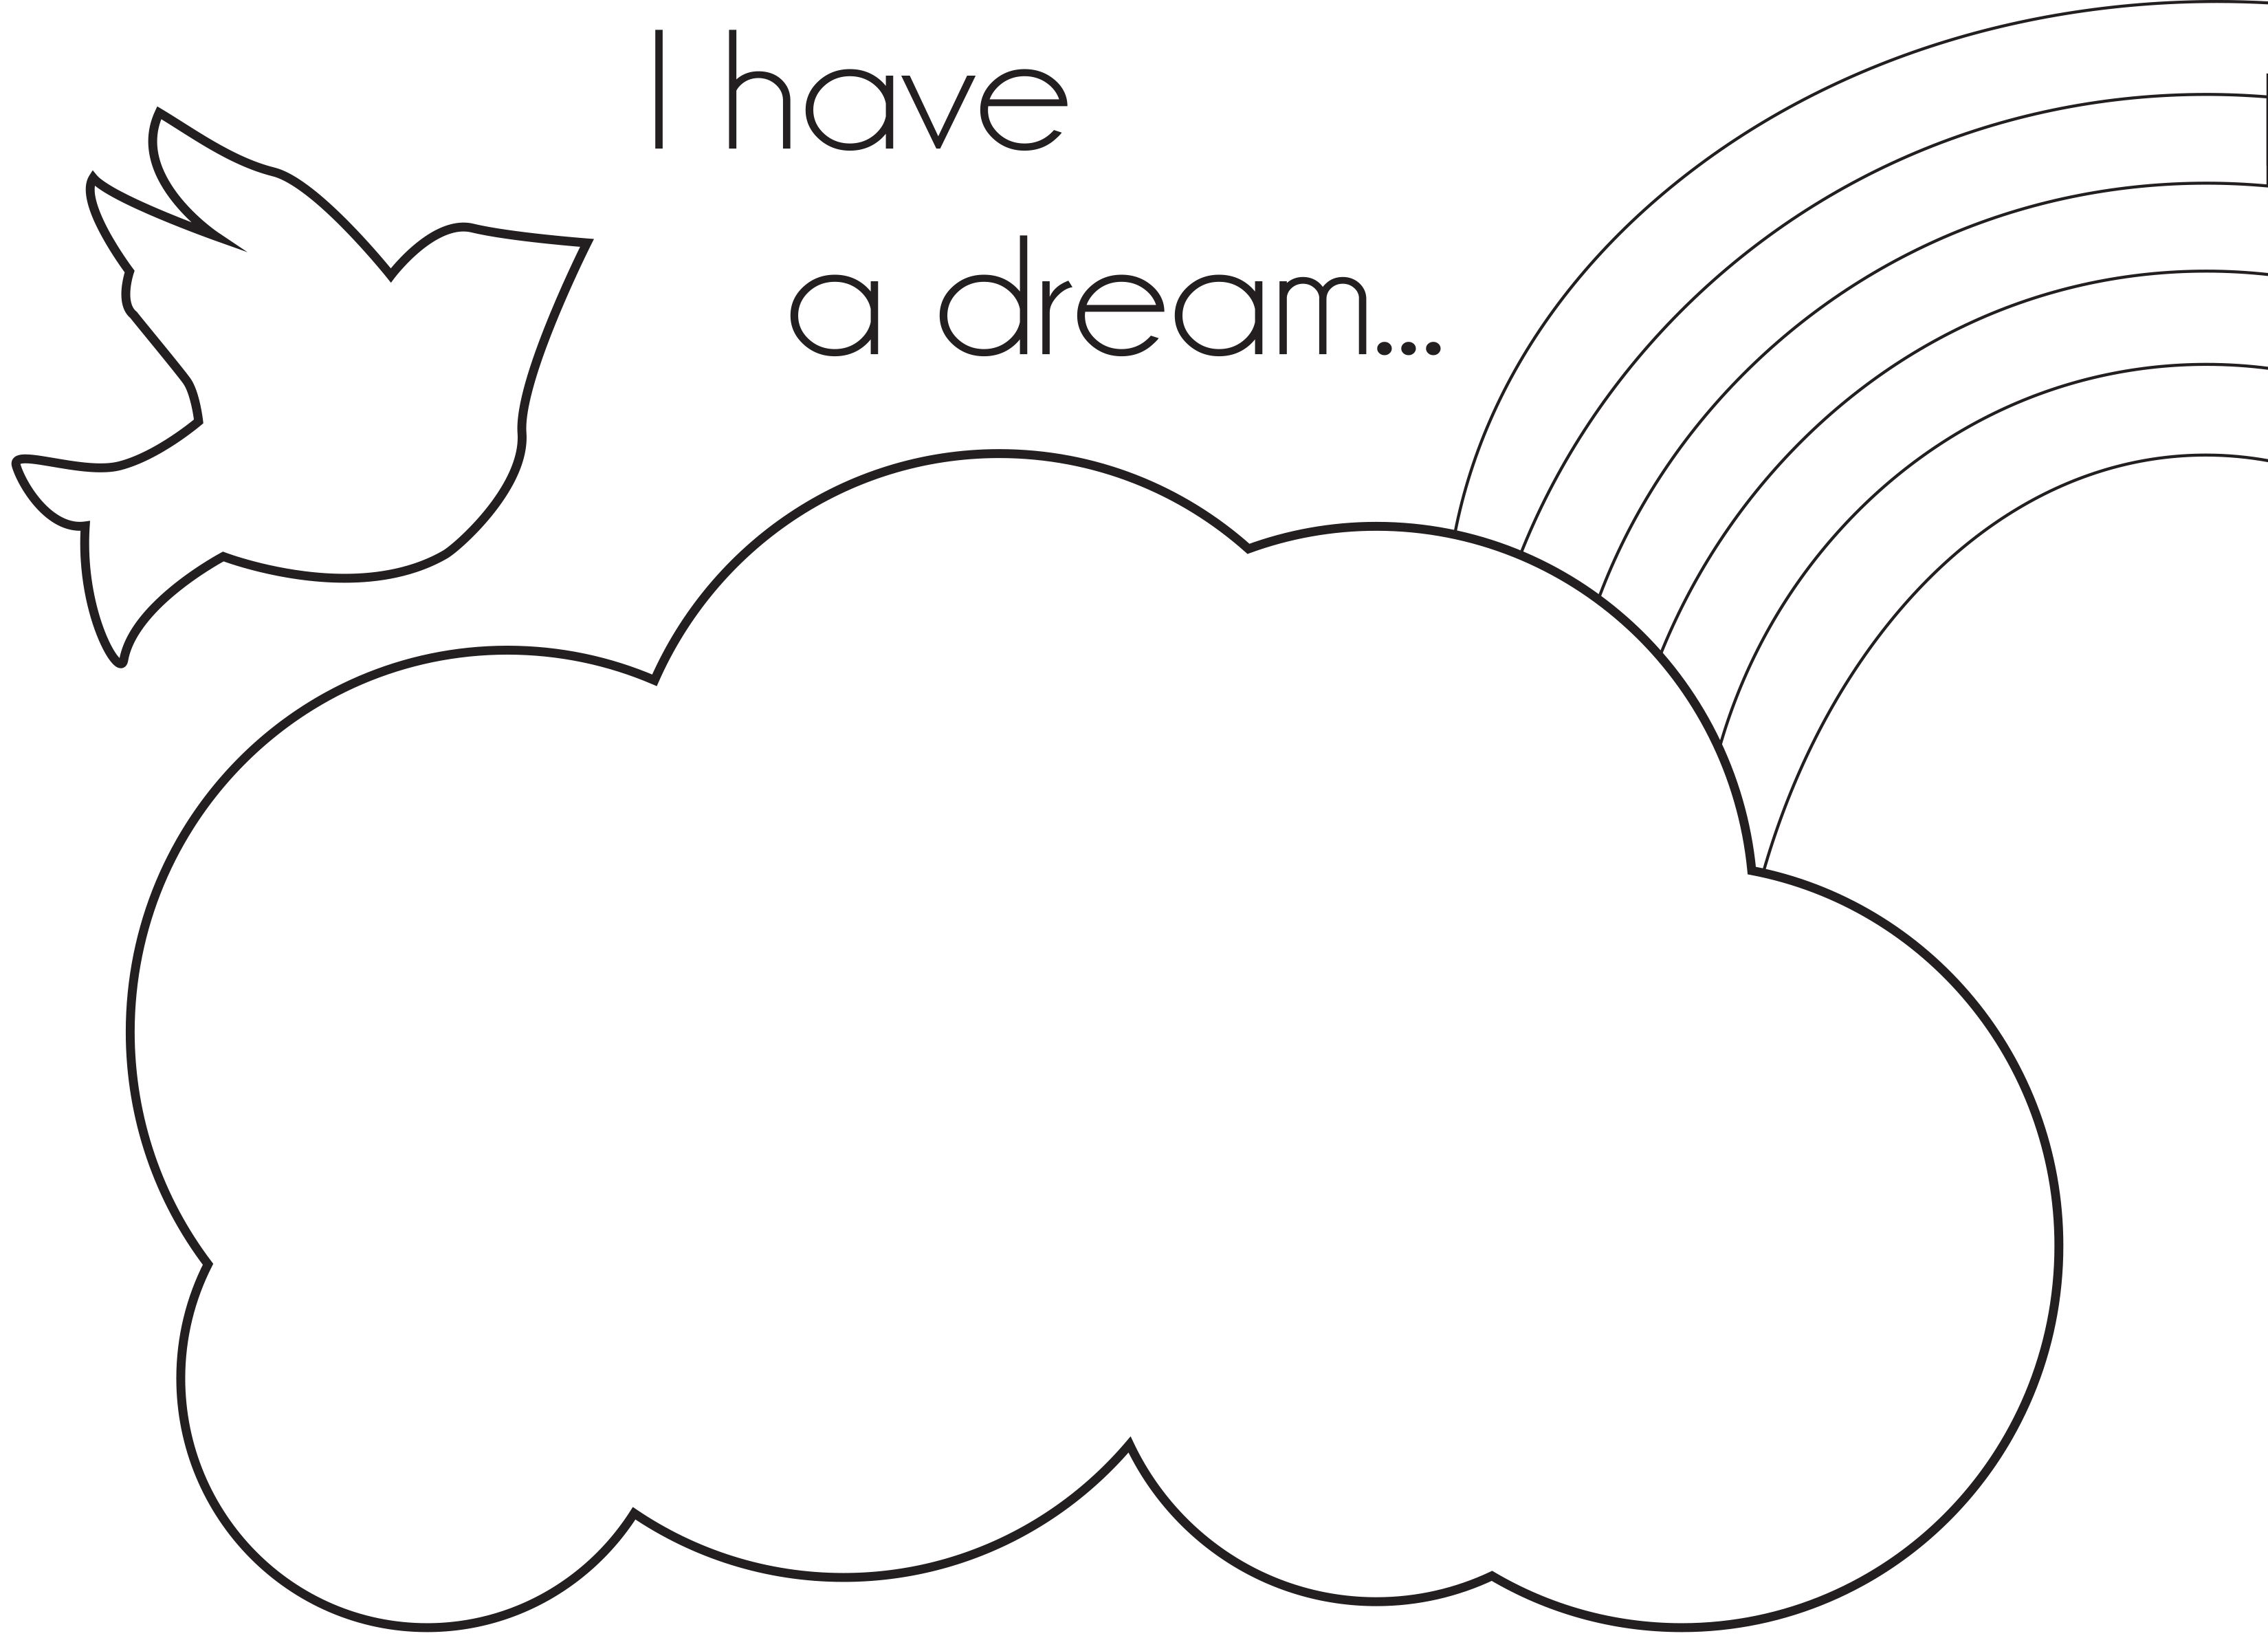 Preschool coloring pages martin luther king - Free Coloring Page On Shoptippi Com Blog For Celebrating Martin Luther King Jr